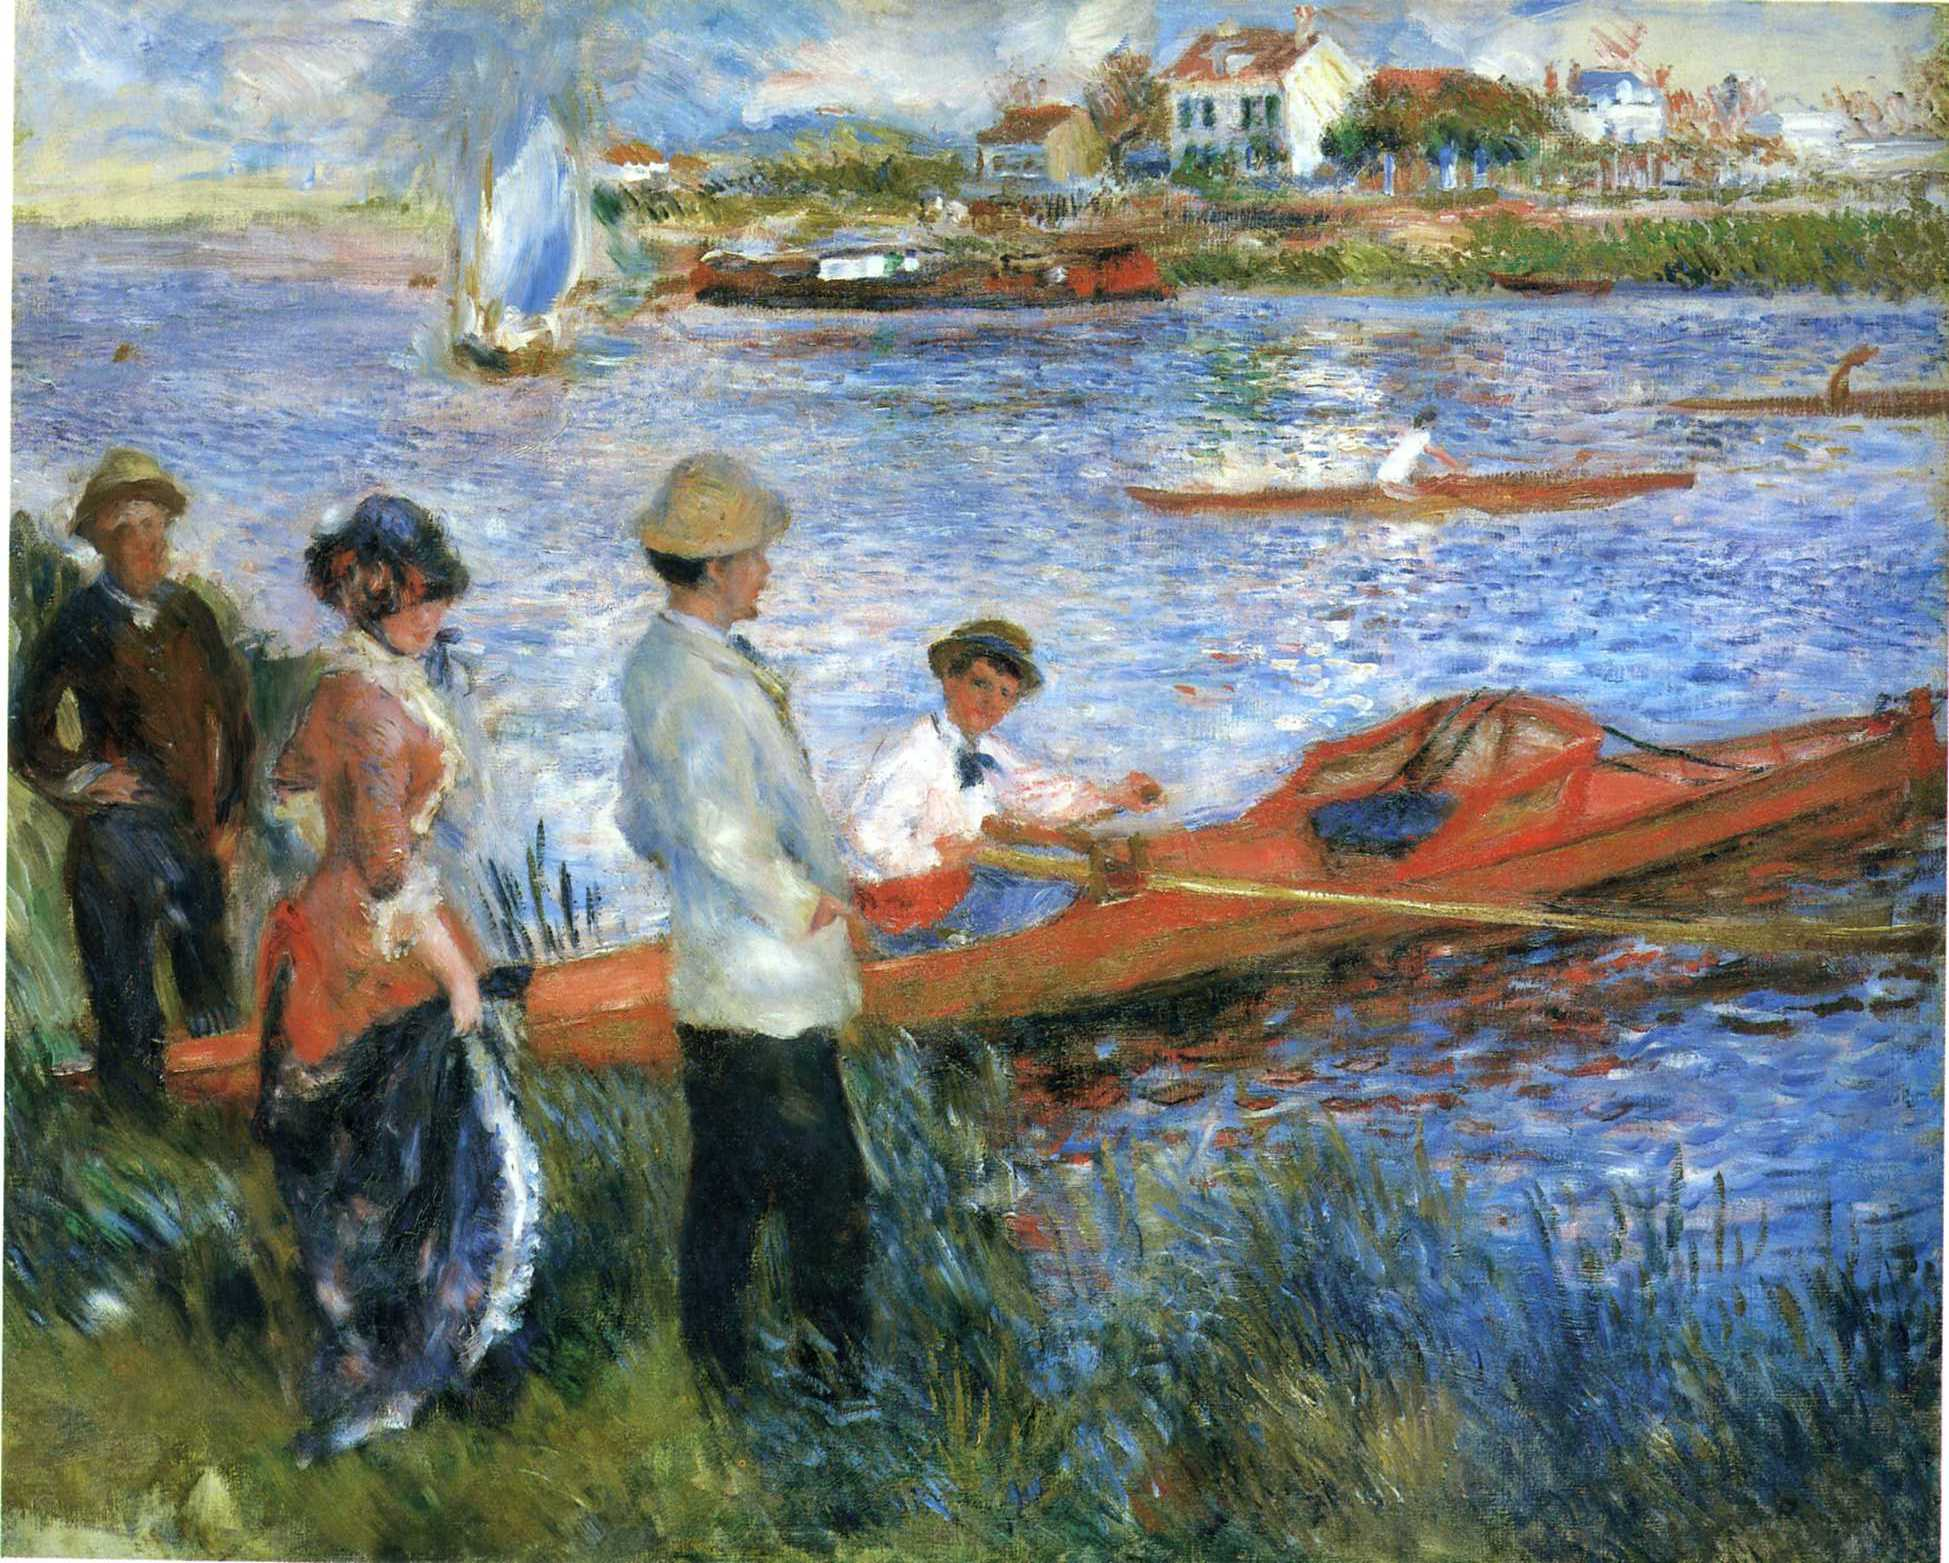 https://uploads5.wikiart.org/images/pierre-auguste-renoir/oarsmen-at-chatou-1879.jpg